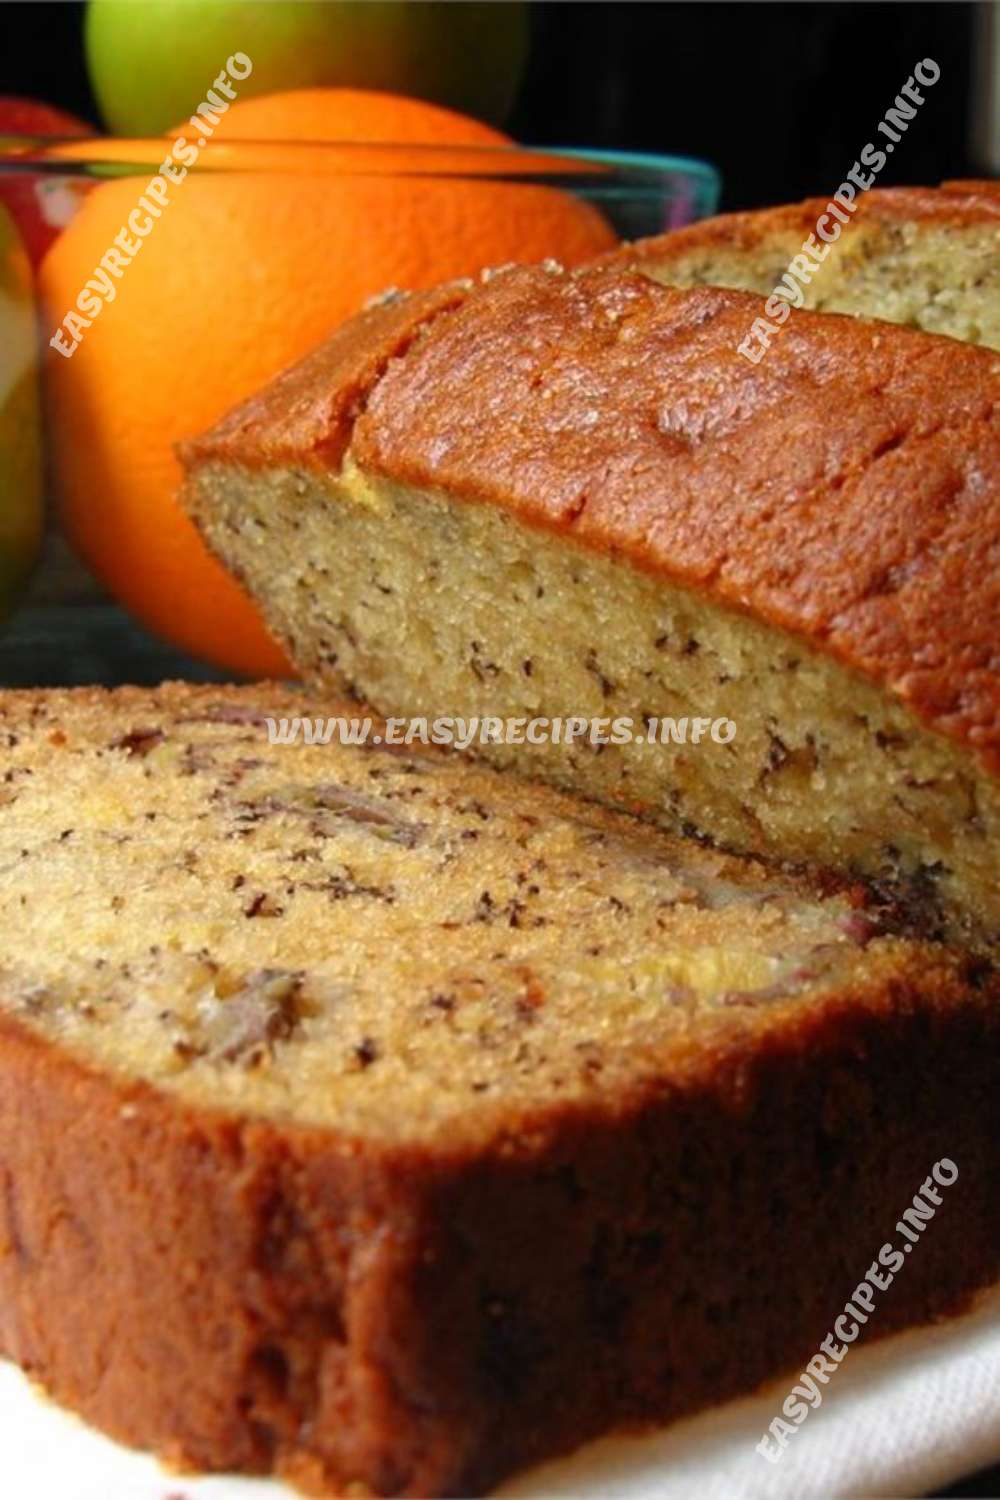 recipes banana bread moist, recipes banana nut bread moist, easy recipes for banana bread moist, recipes for banana nut bread moist, banana bread recipe moist healthy, banana bread recipe moist oil, banana bread recipe moist yogurt, recipe for banana bread moist, recipe banana bread moist, recipe for moist banana bread, easy recipes for banana bread moist, recipe banana nut bread moist, recipe for super moist banana bread, banana bread recipe super moist